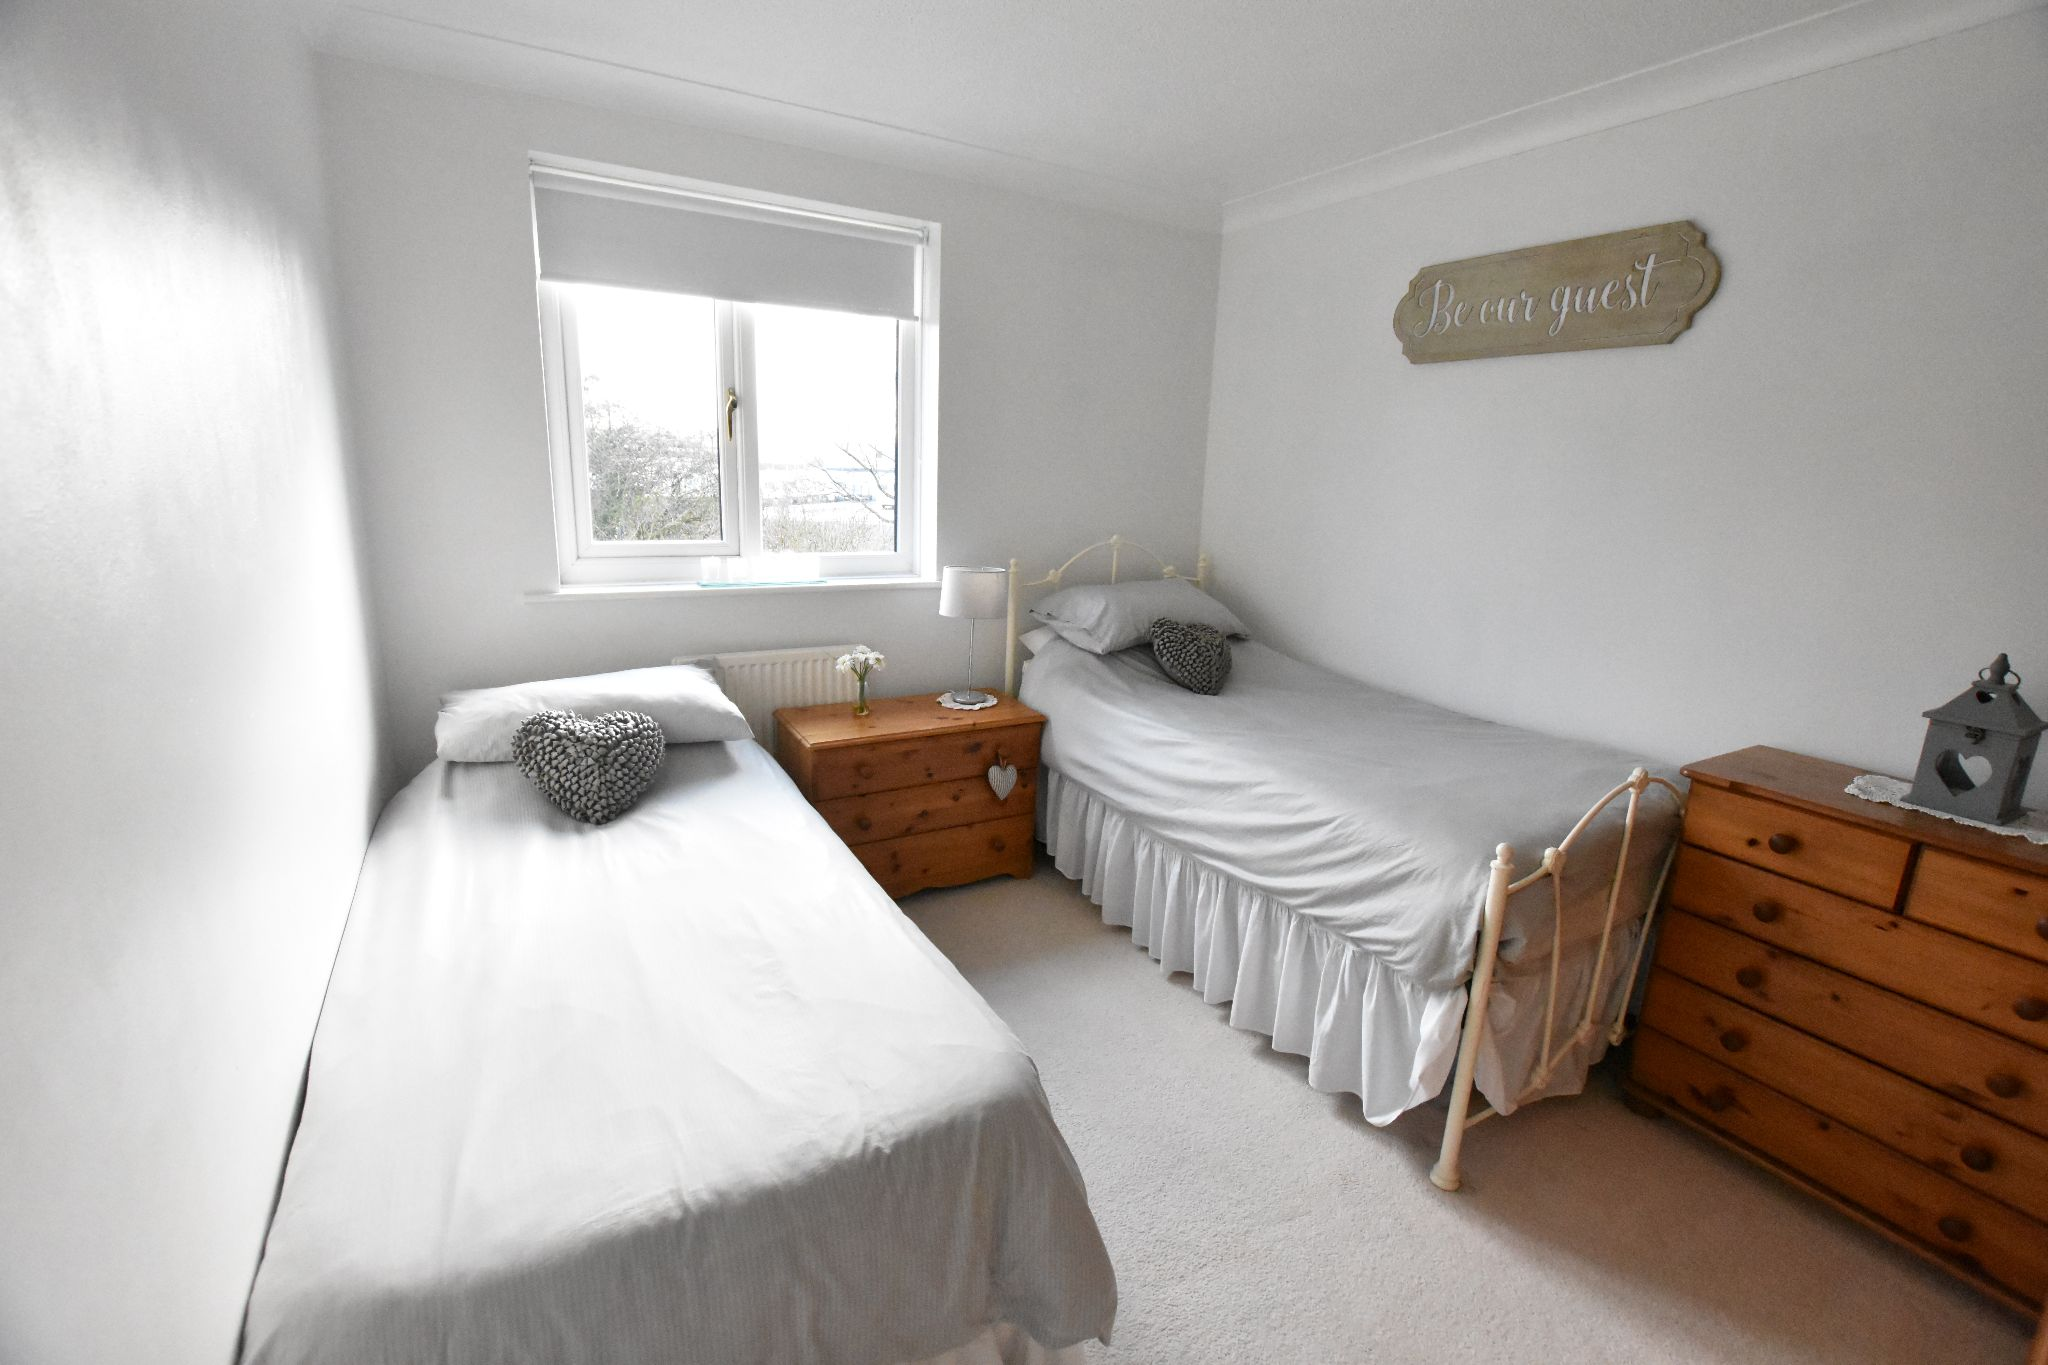 4 bedroom detached house Sold STC in Lytham St. Annes - Bedroom 2